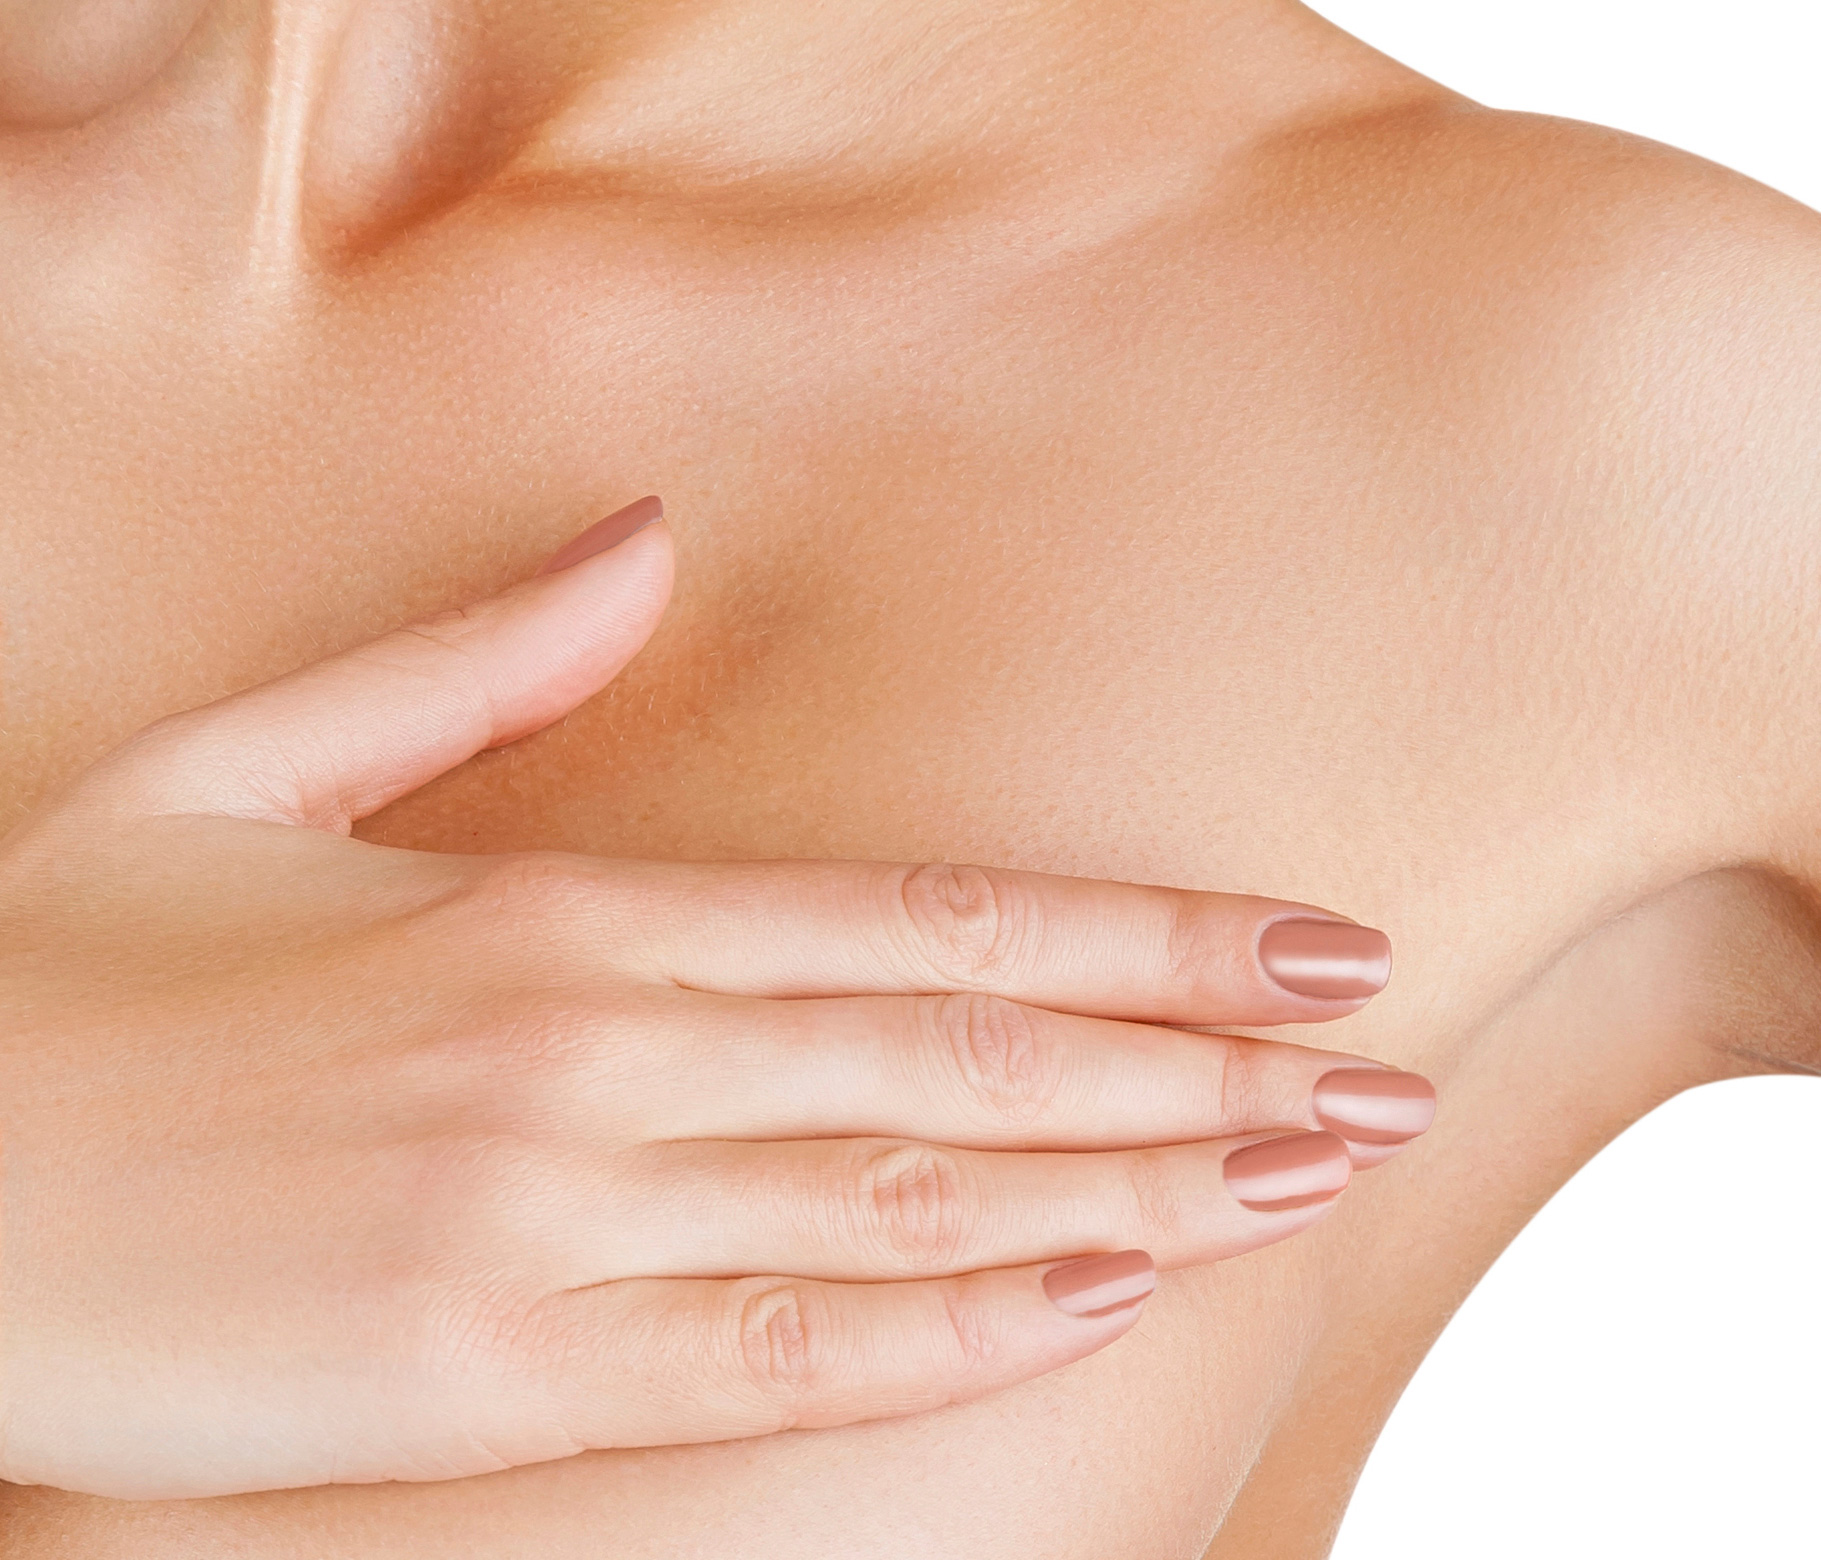 breast-examination_w.jpg